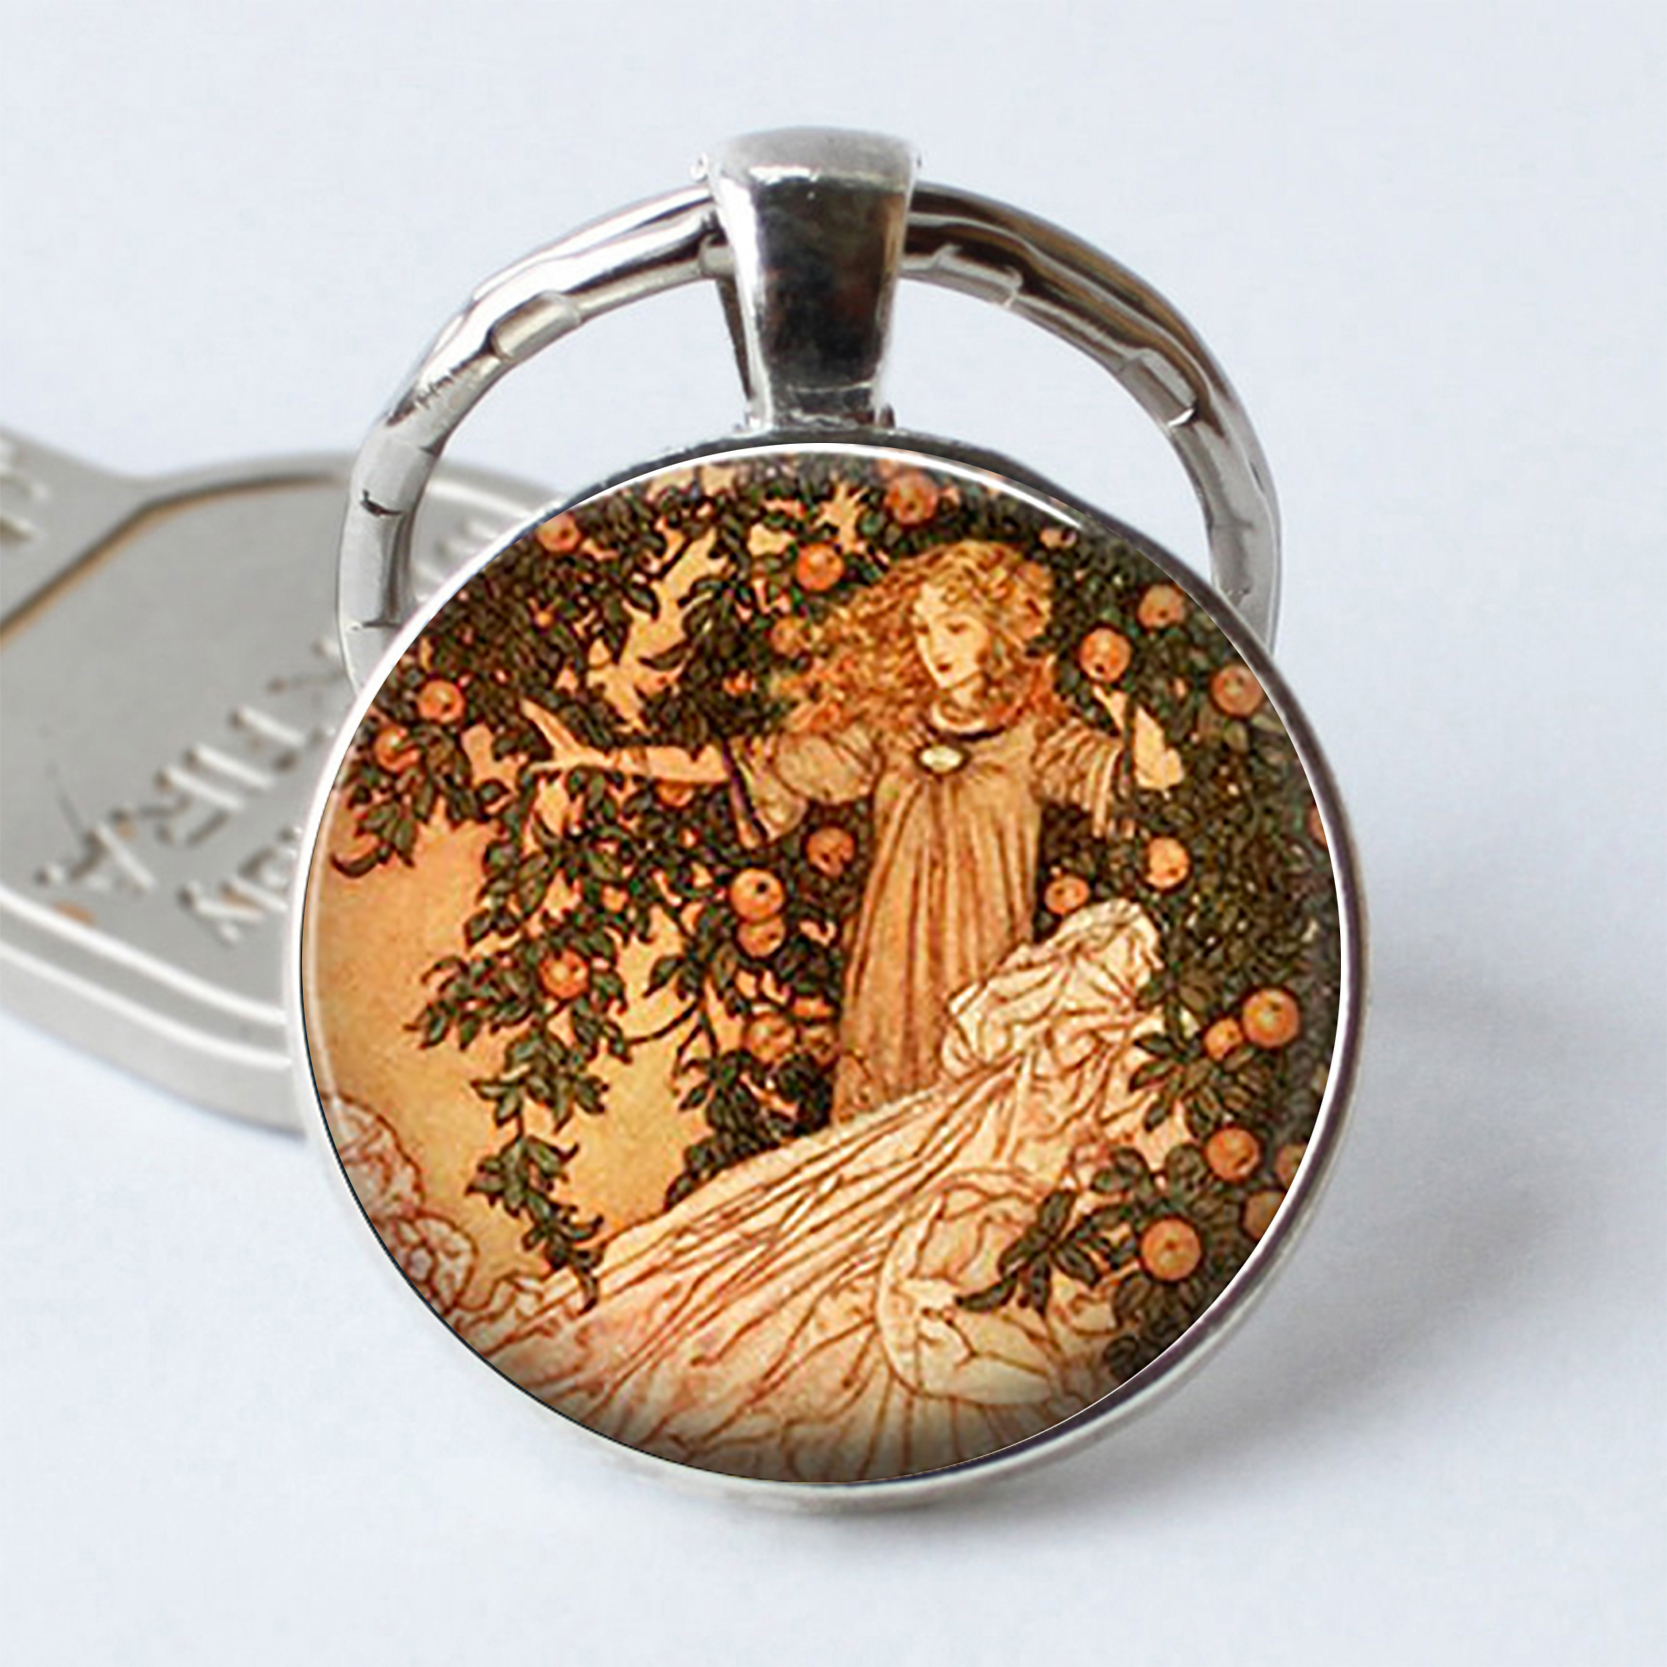 Fairy Tale series jewelry key chain garden goddess picture glass ...